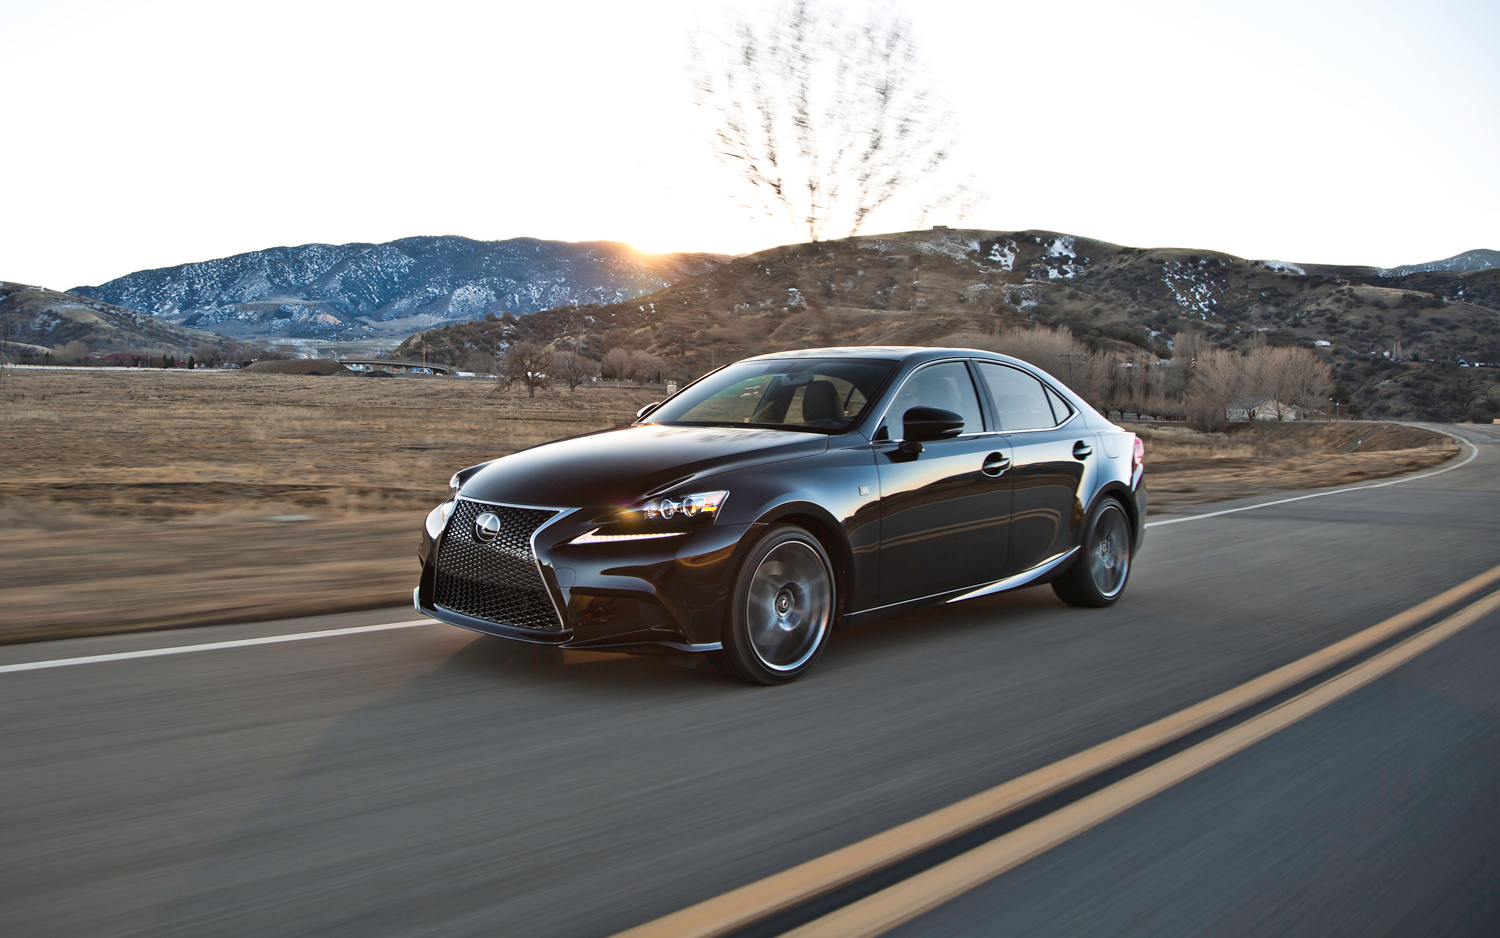 Beautiful 2014 Lexus IS 350 F Sport First Drive